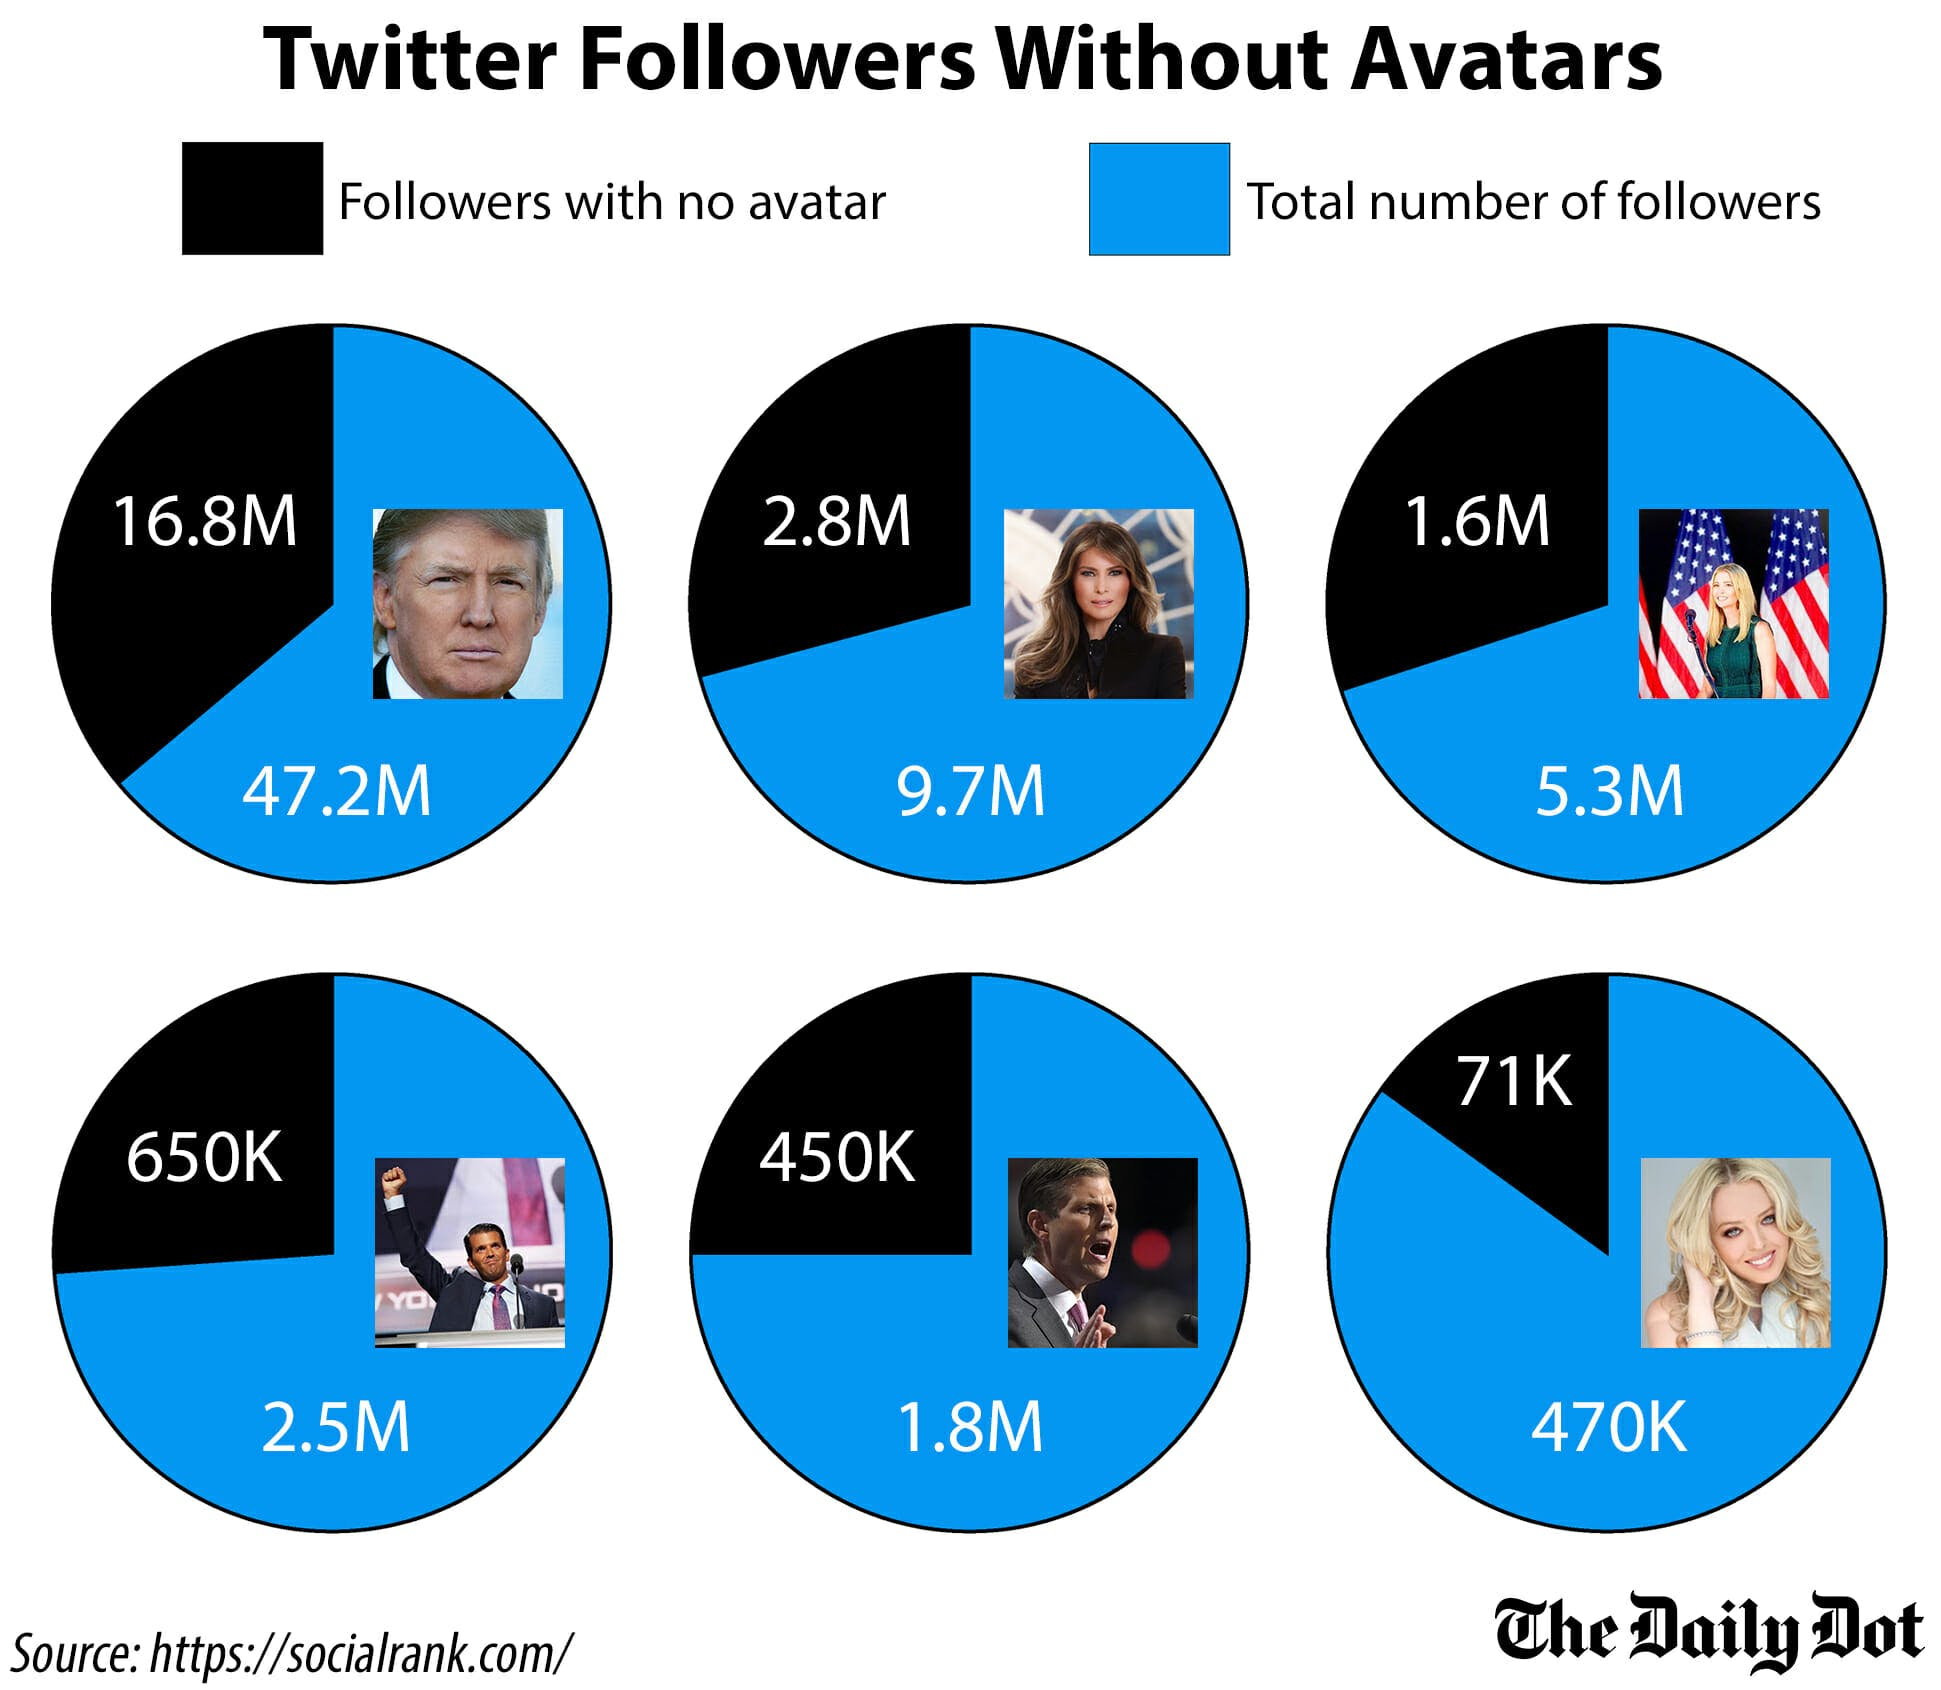 Trump family Twitter followers without avatars